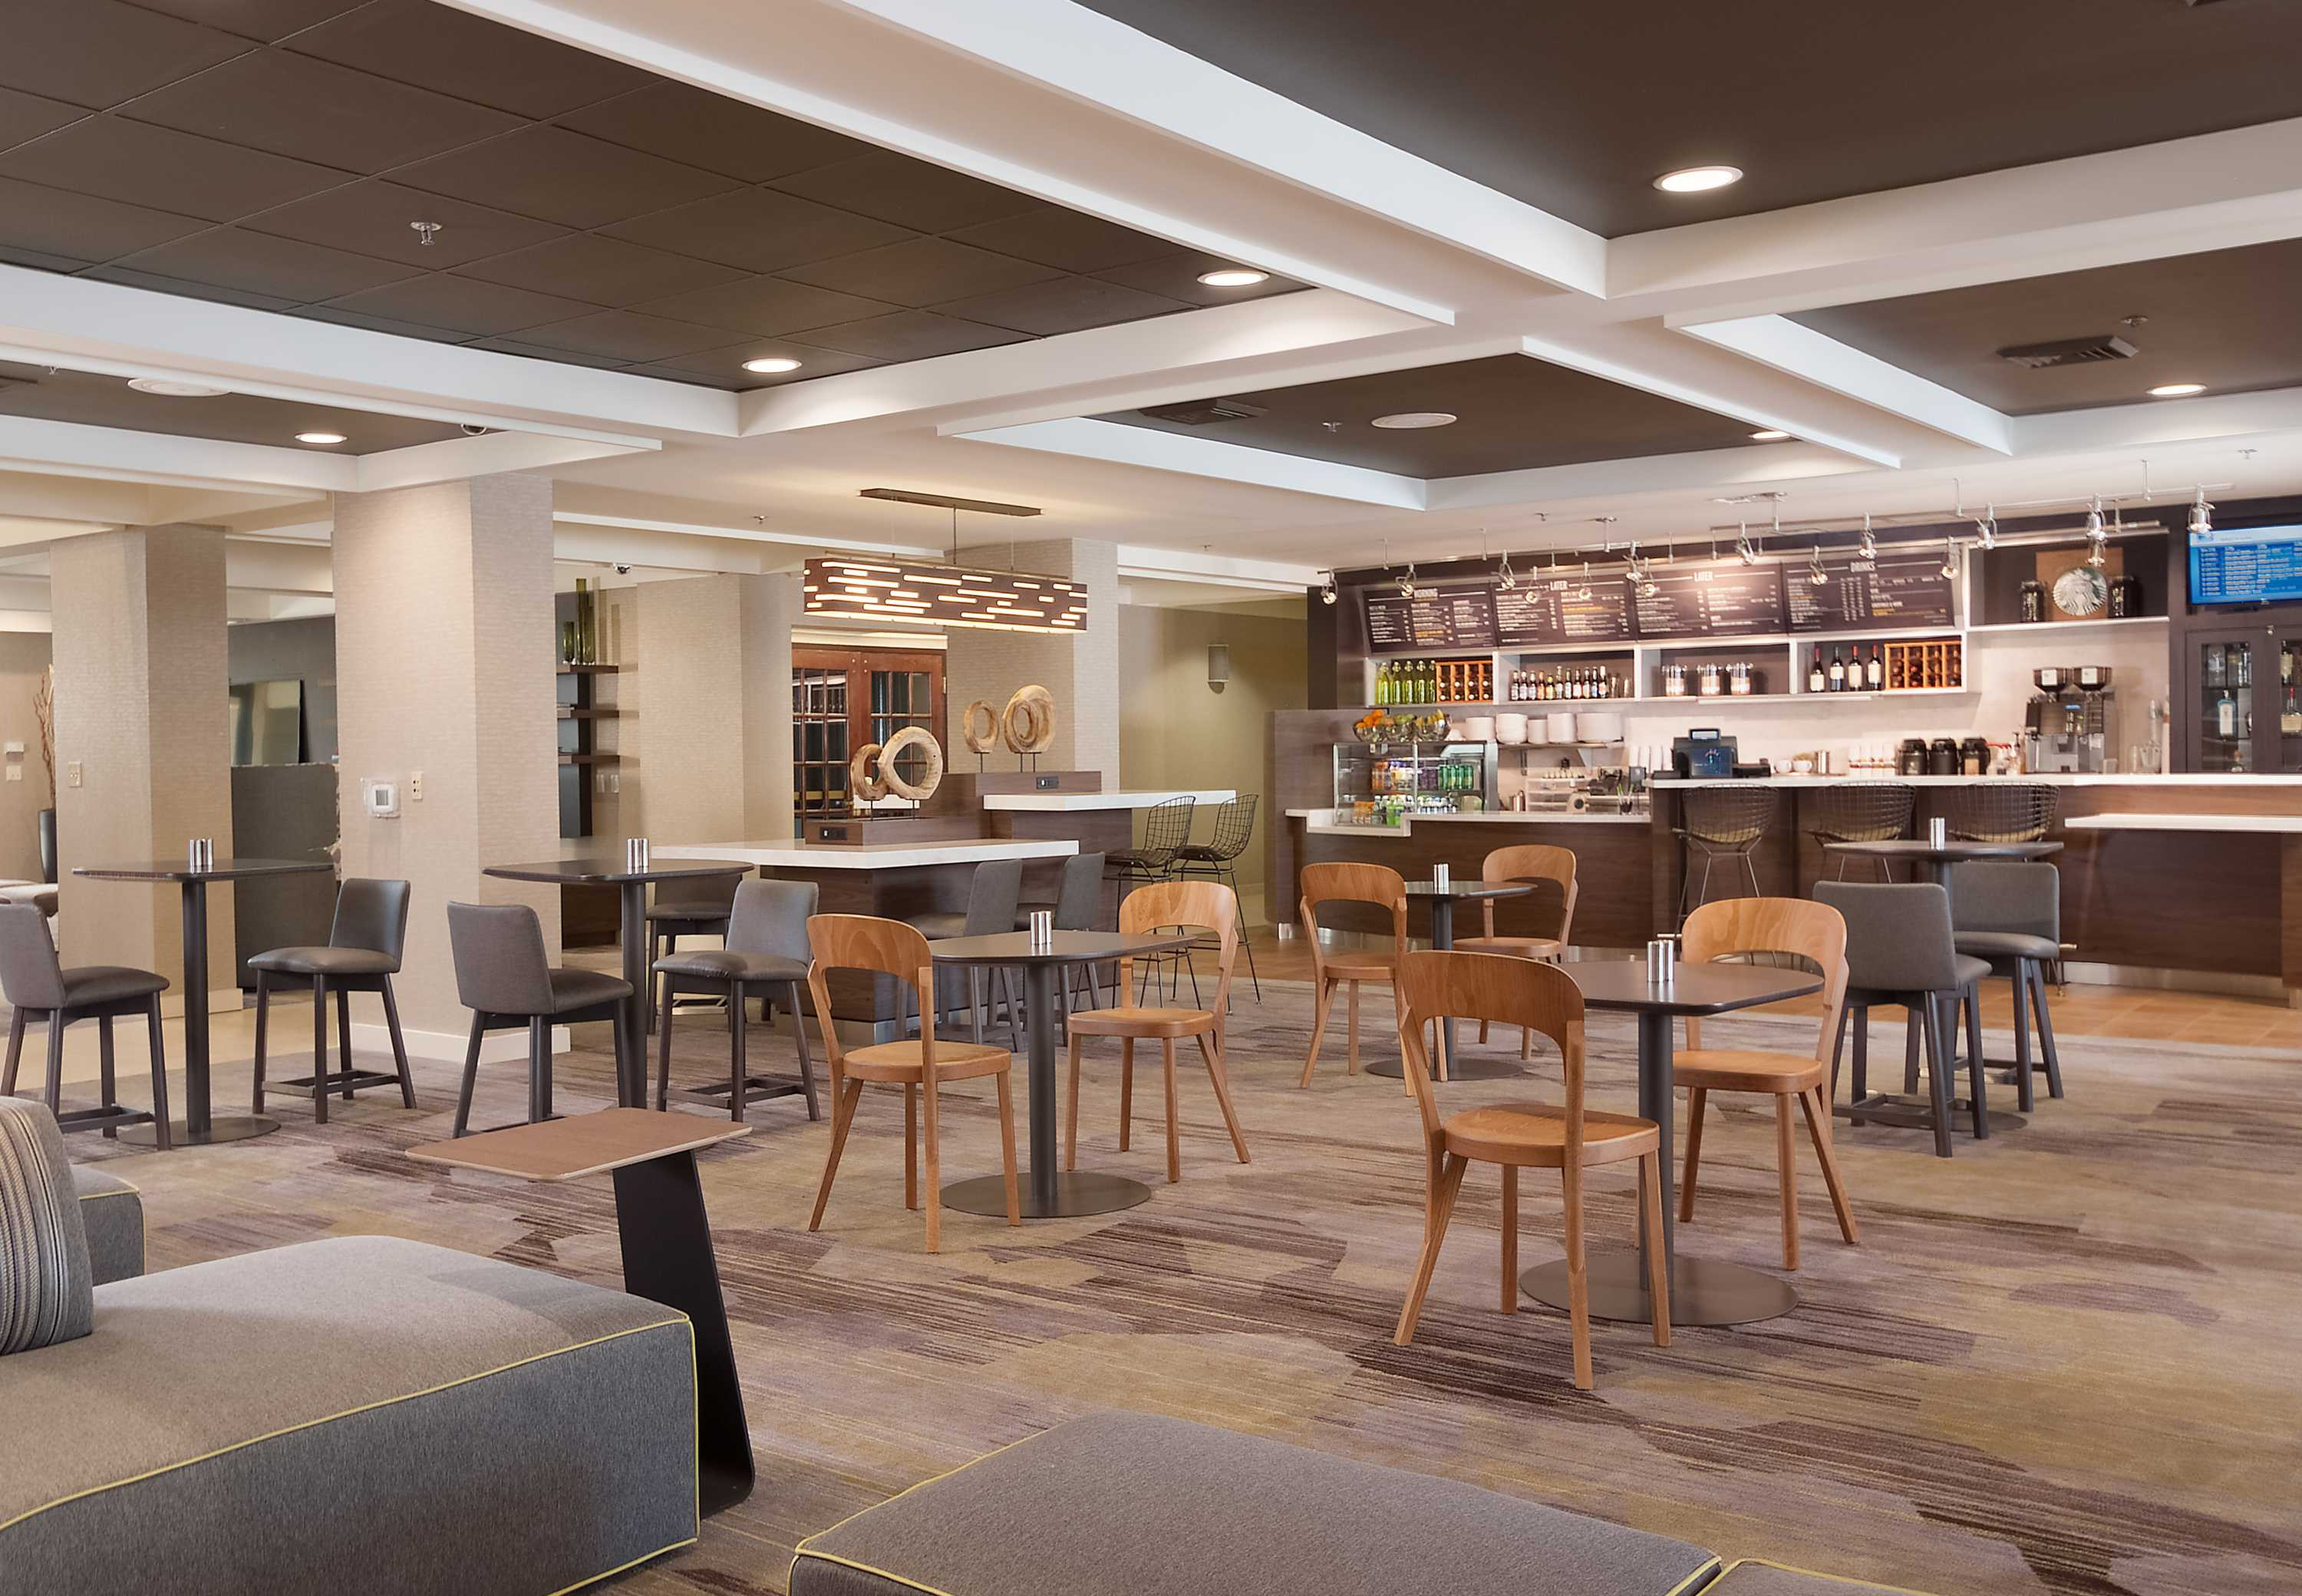 Courtyard by Marriott Greenville-Spartanburg Airport image 9